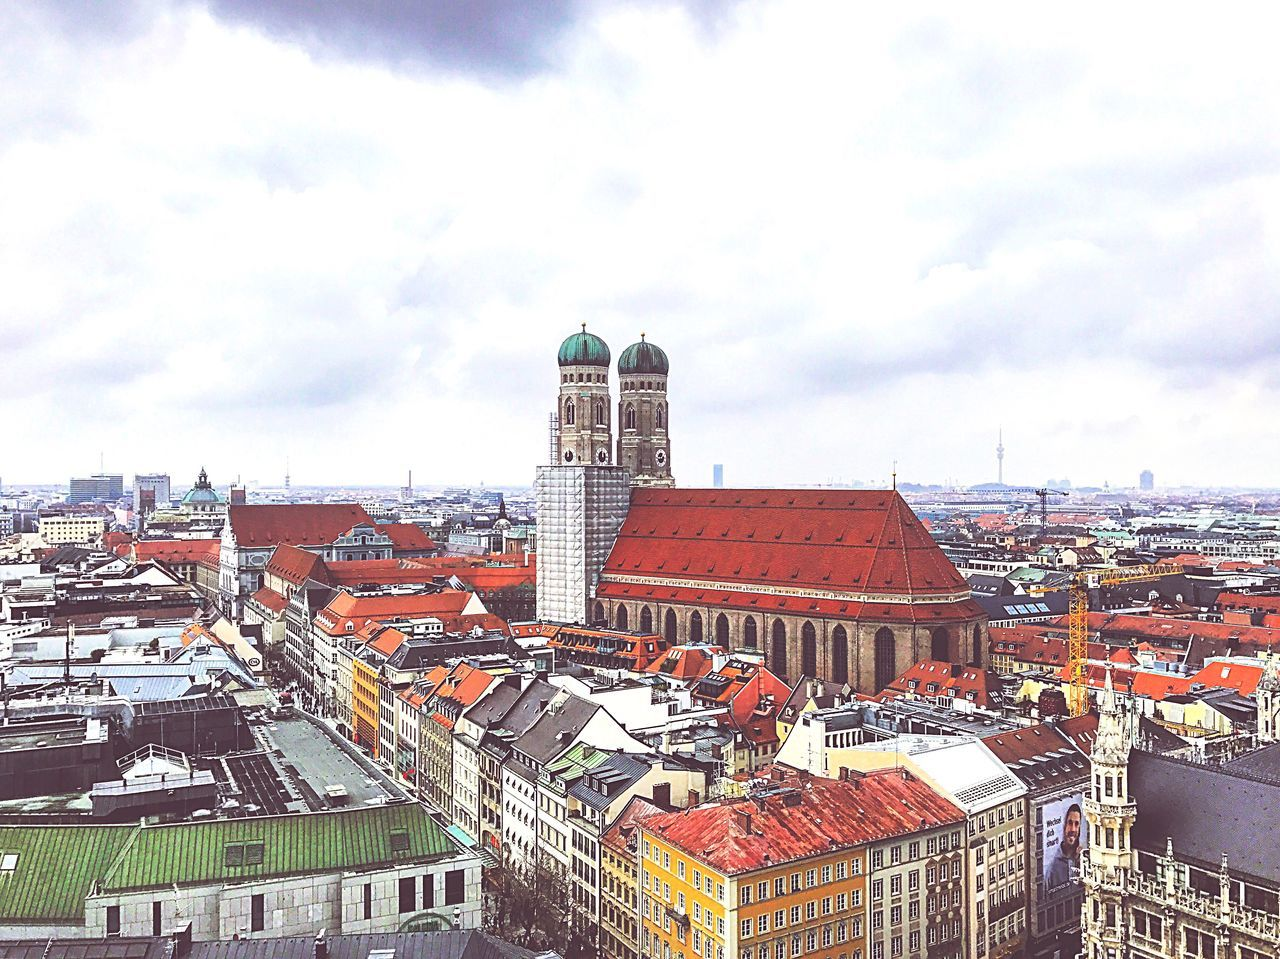 Architecture Building Exterior Built Structure Roof Day High Angle View Sky Cityscape No People Outdoors Cloud - Sky EyeEmNewHere Clear Sky Photography Enjoying Life Munich Travel Hello World Beautiful Streetphotography Taking Photos Love Landscape City